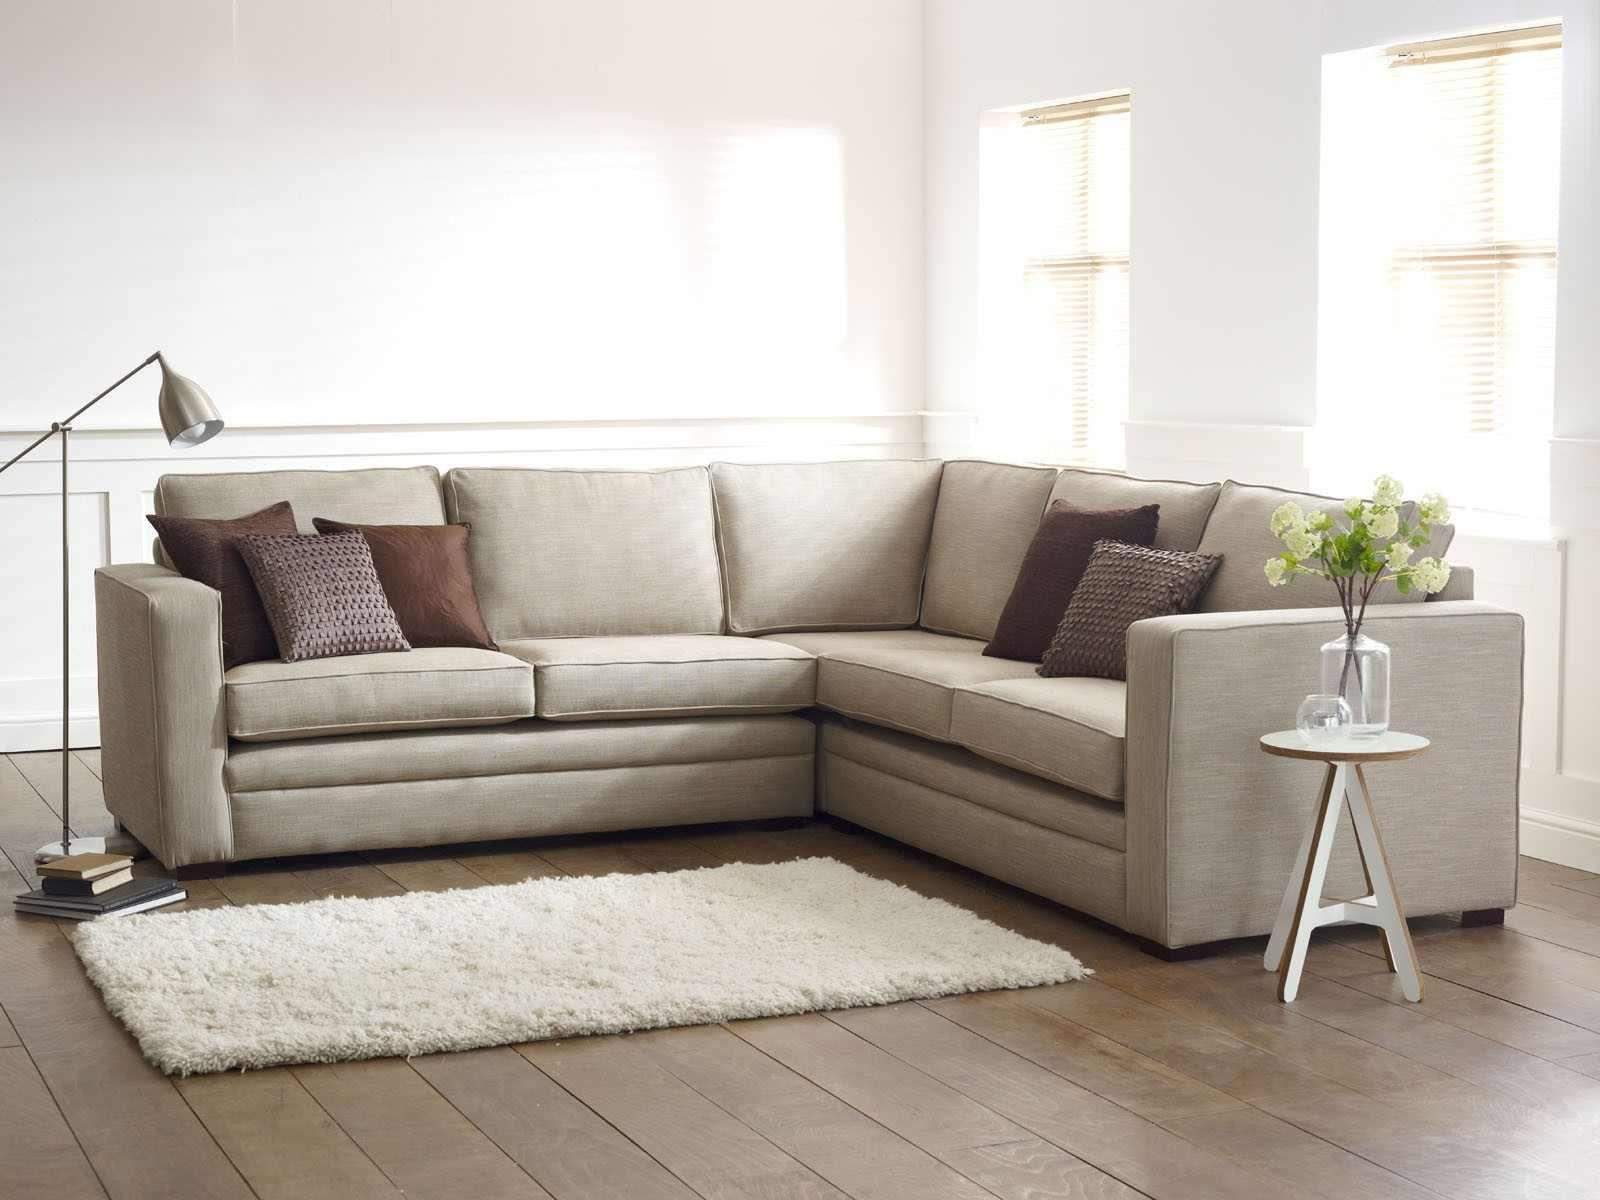 ▻ Sofa : 38 Orange Leather Sectional Sofa With Chaise Lounge Throughout Leather L Shaped Sectional Sofas (Image 1 of 20)